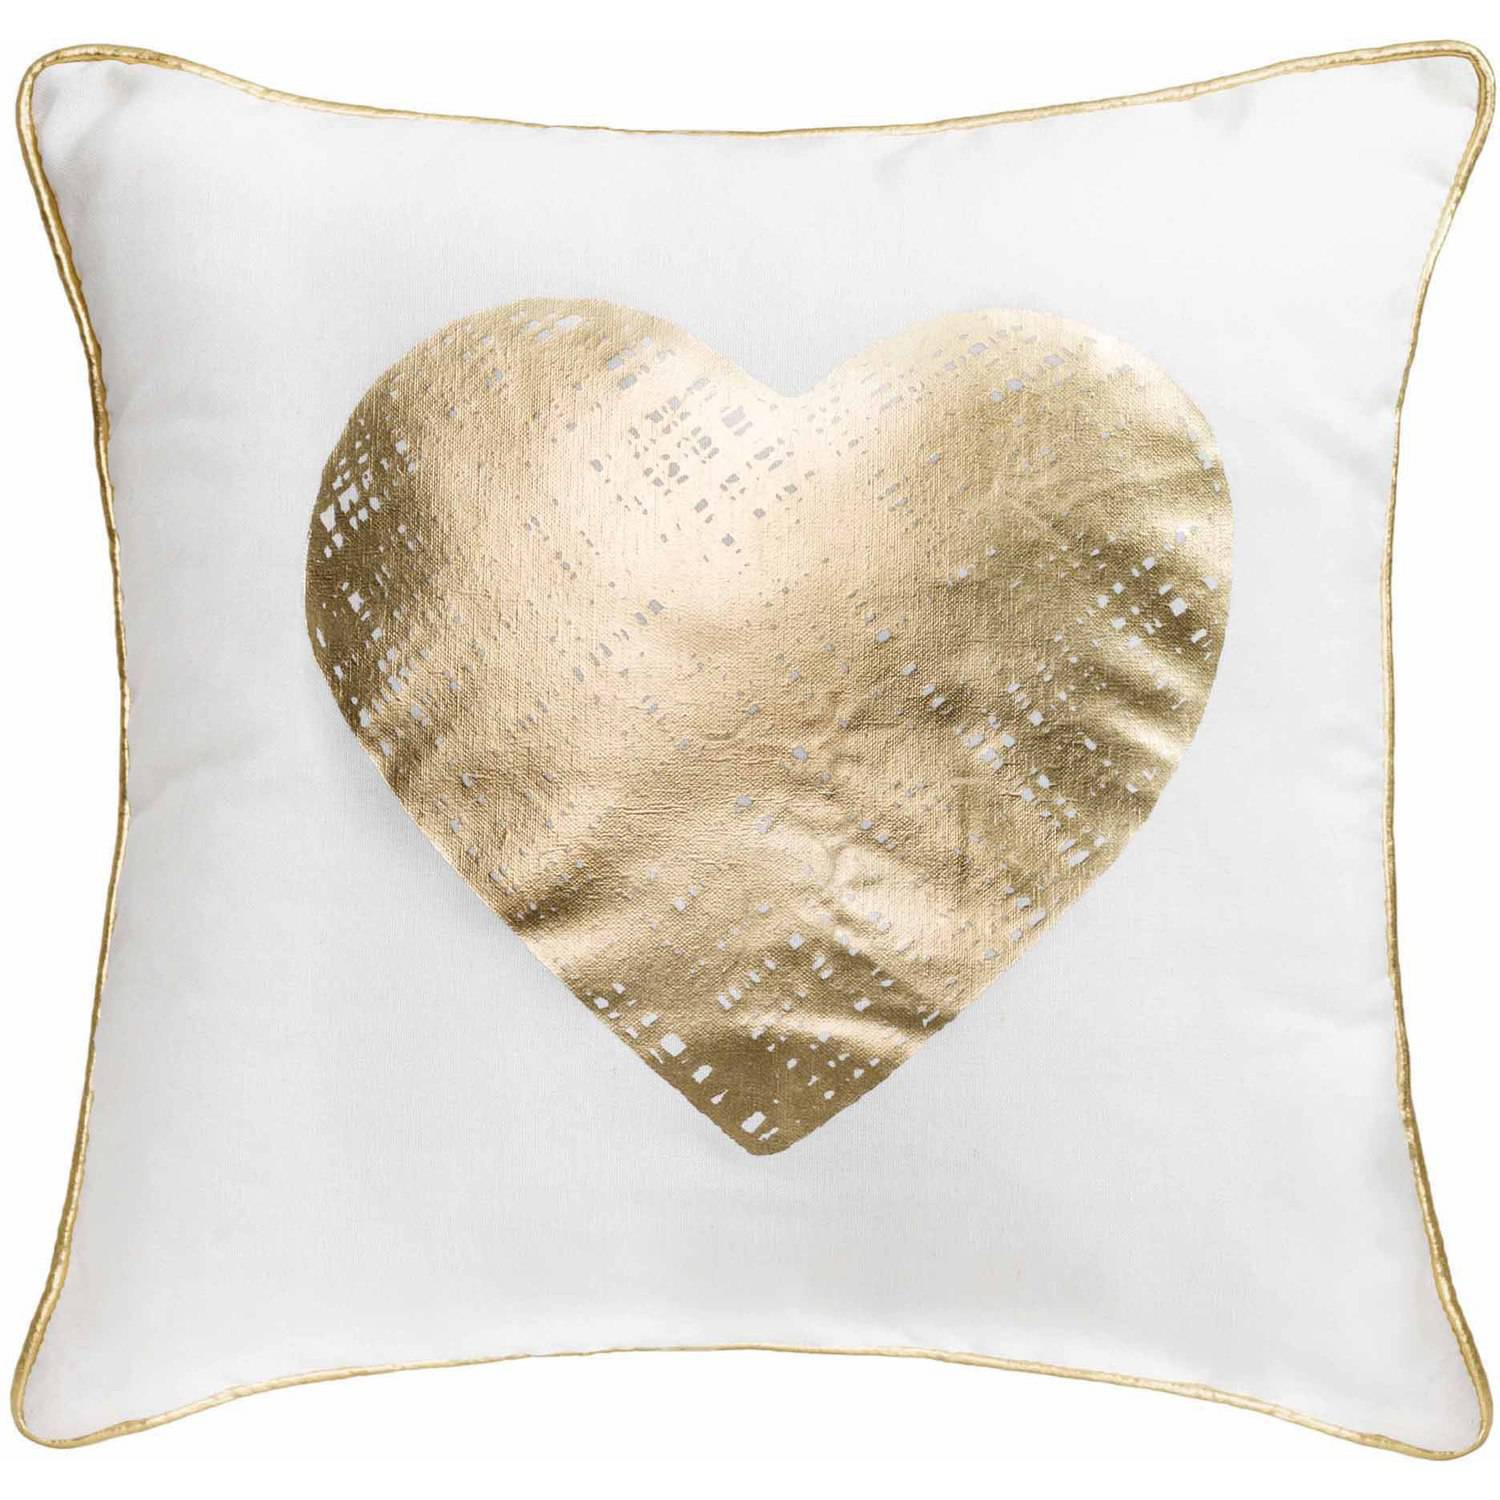 Better Homes and Gardens Gold Heart, Stylish Gold Foil Pillow with ...